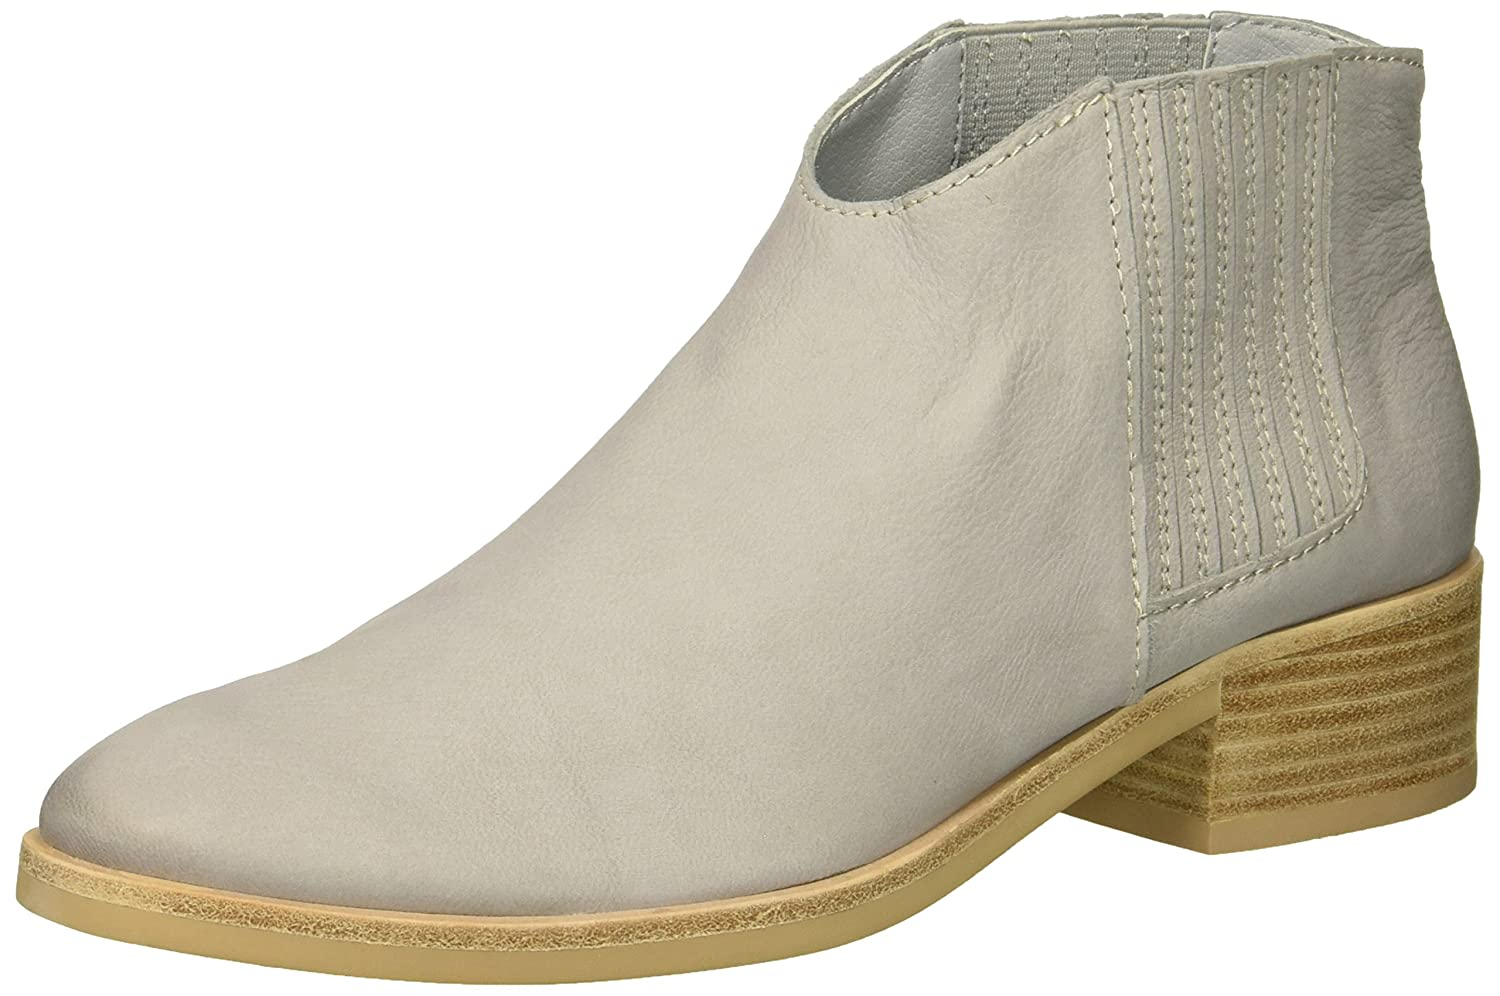 Dolce Boot Vita Women's Towne Ankle Boot Dolce B07BRGB3LR 8 B(M) US|Ice Blue Nubuck 604778